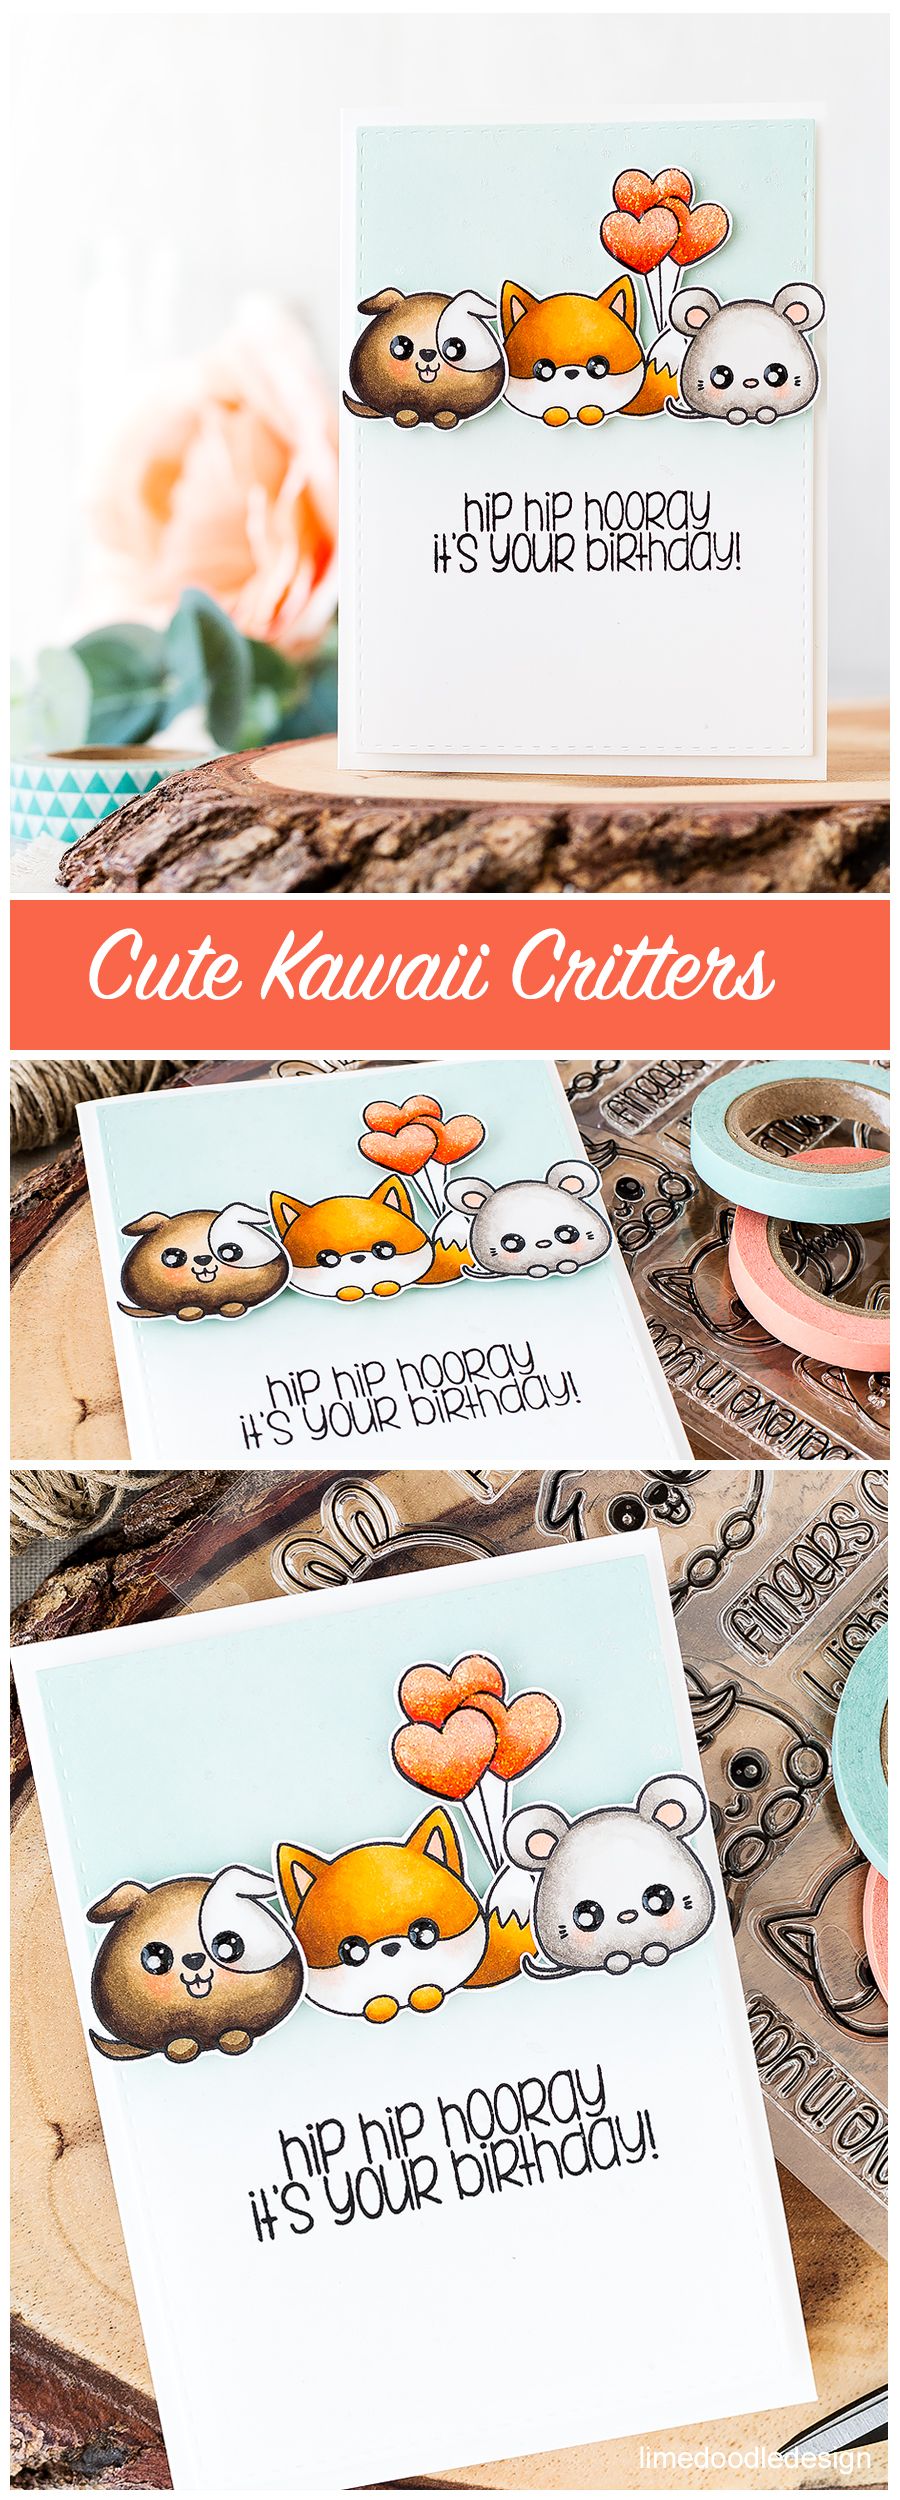 Cute kawaii critters. Find out more about this card by clicking on the following link: http://limedoodledesign.com/2016/08/cute-kawaii-critters/